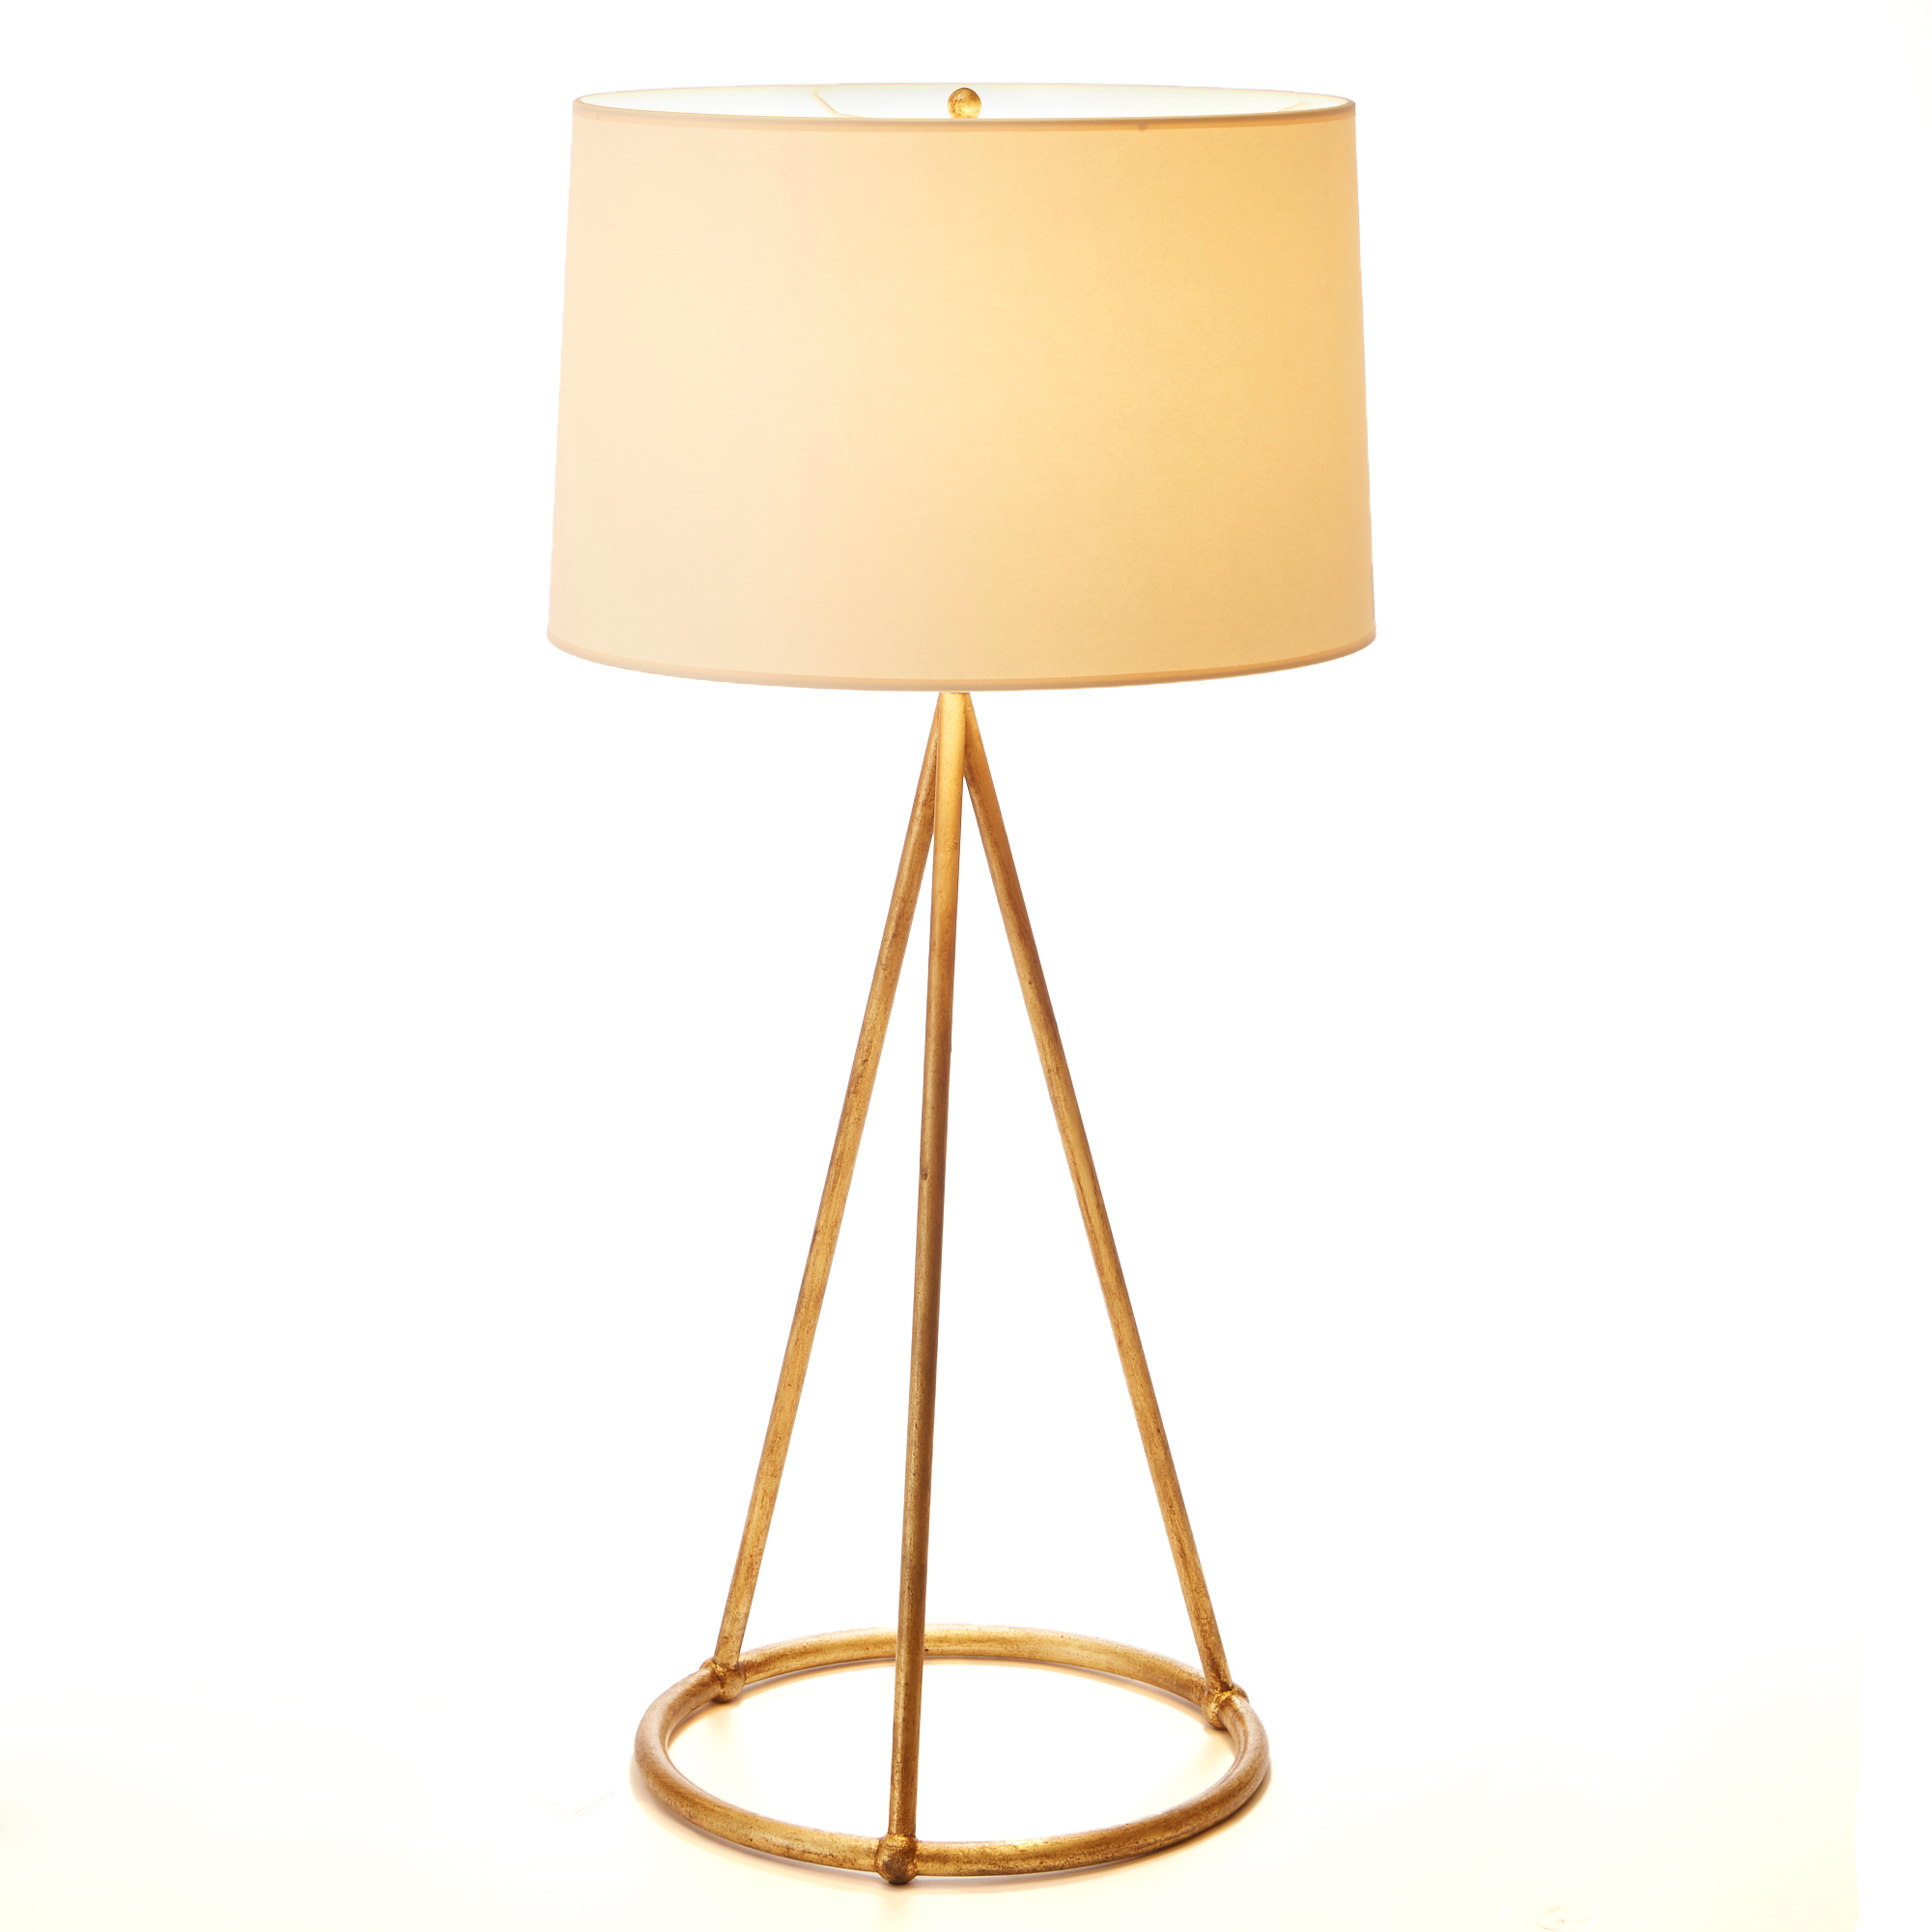 Thomas O'Brien Tripod Table Lamp